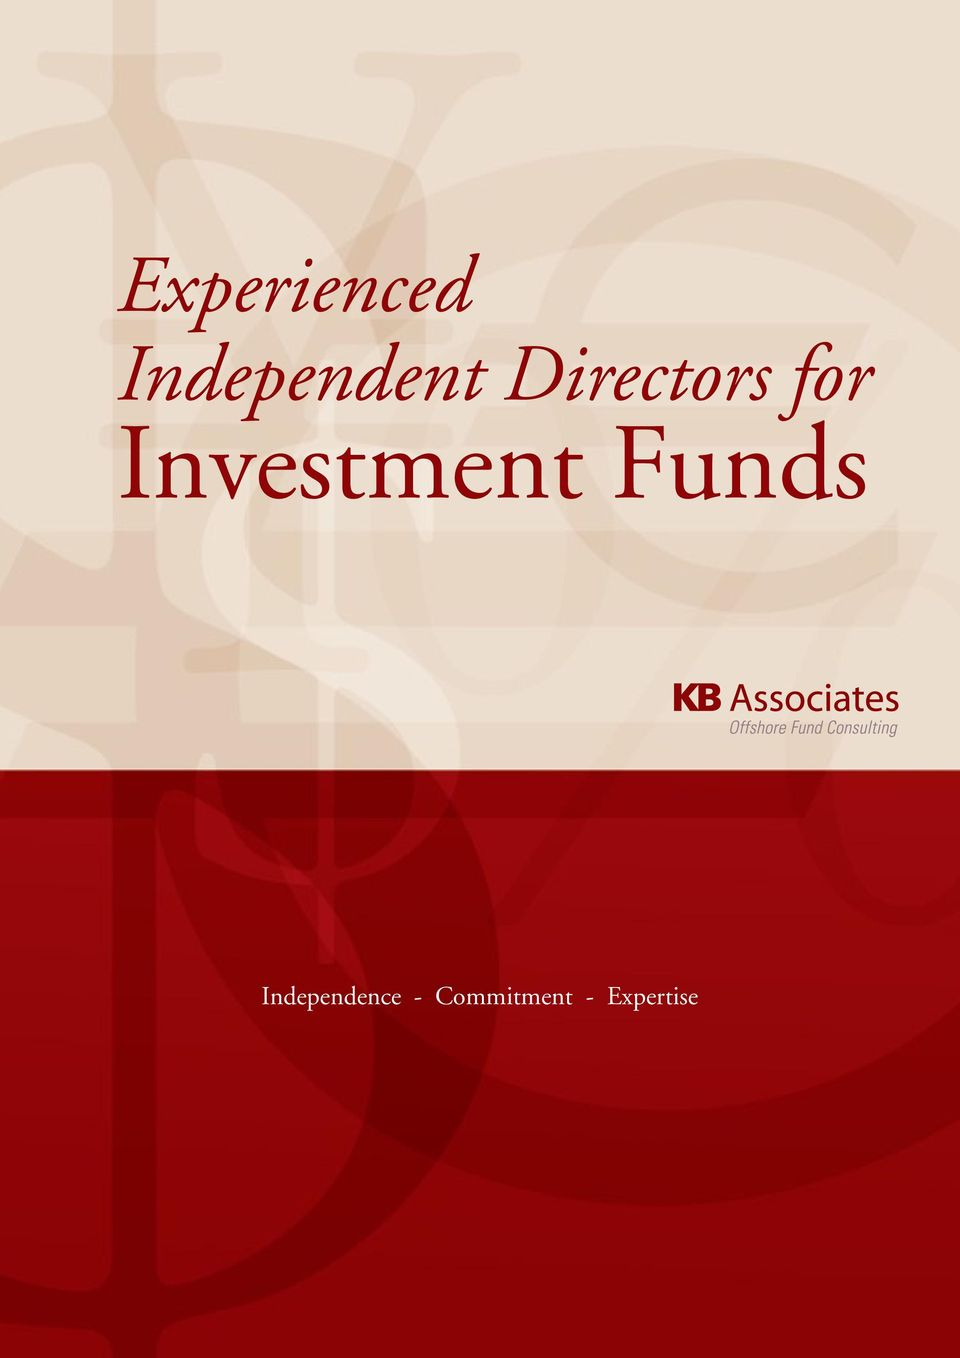 for Investment Funds